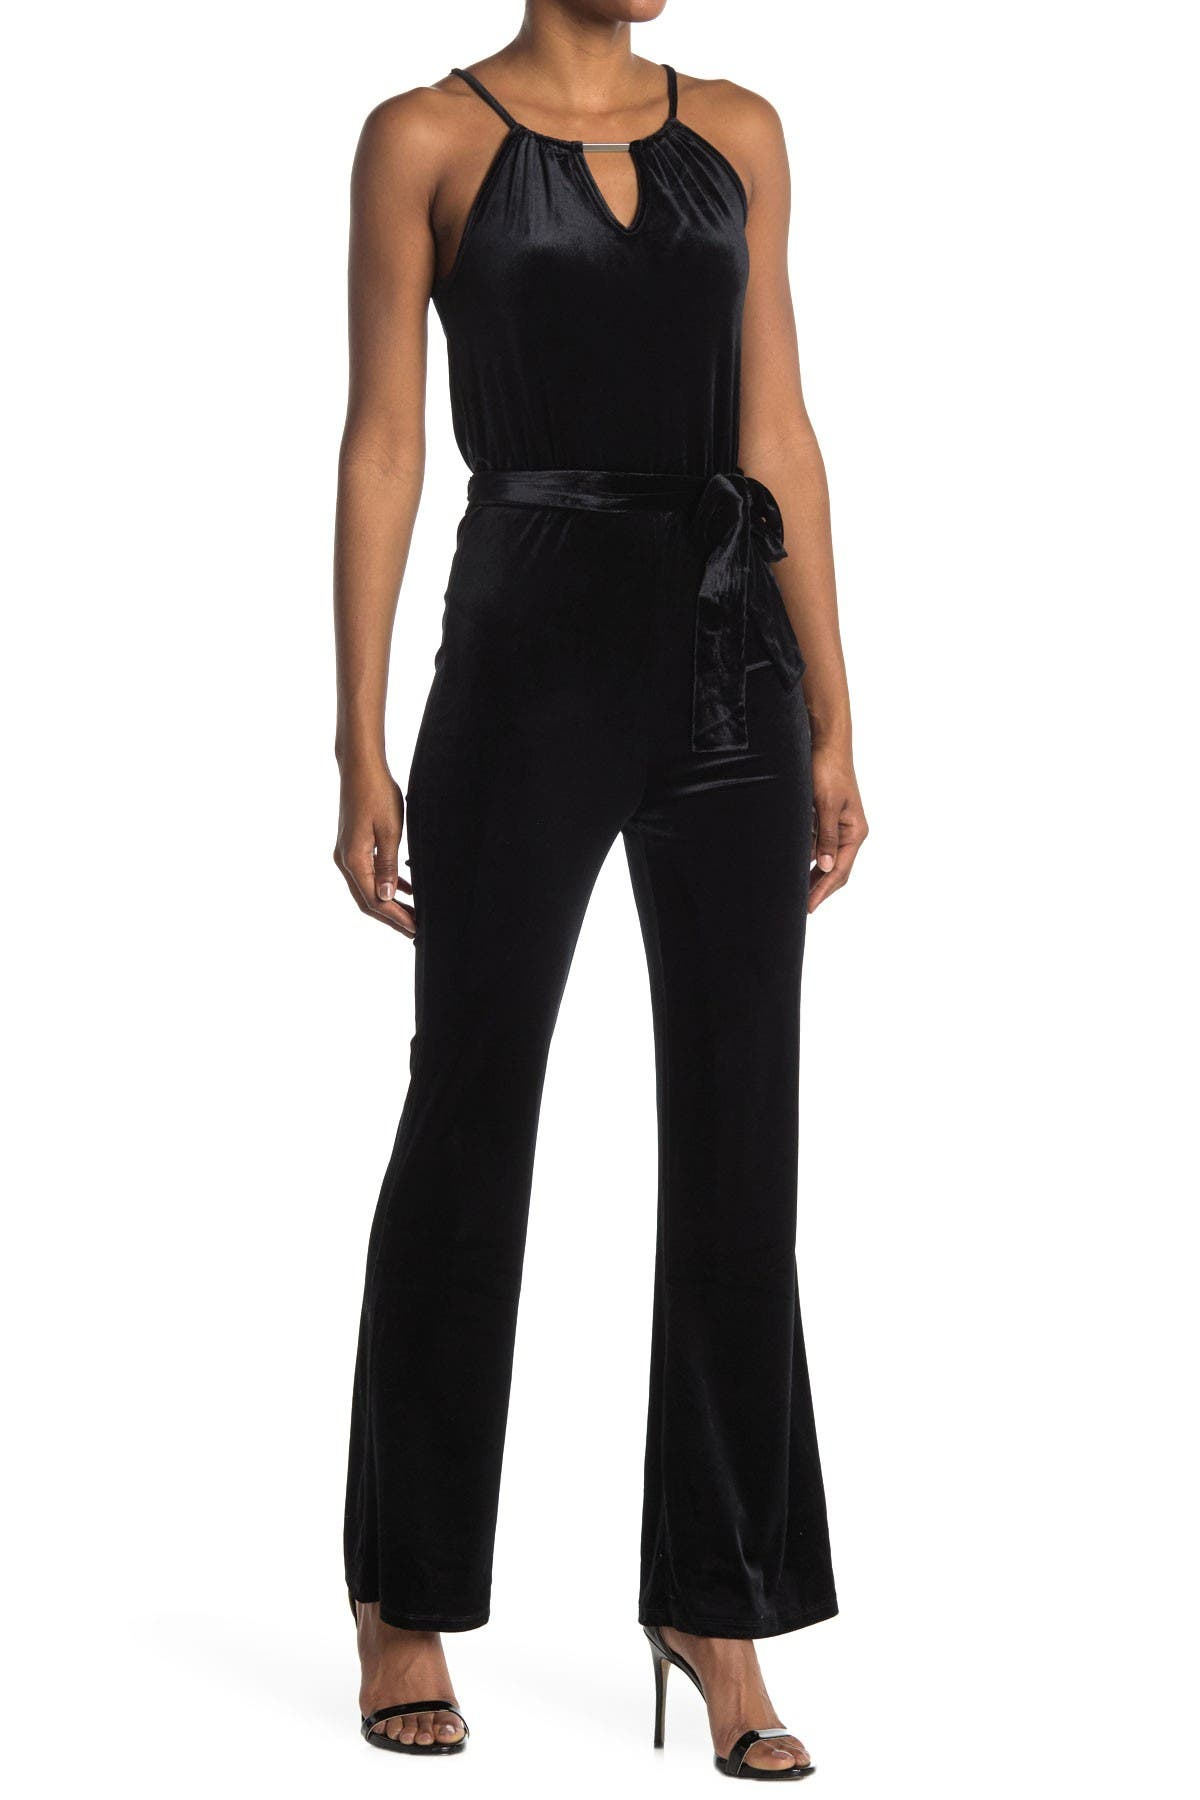 Image of Love, Fire Velvet Cutout Waist Tie Jumpsuit